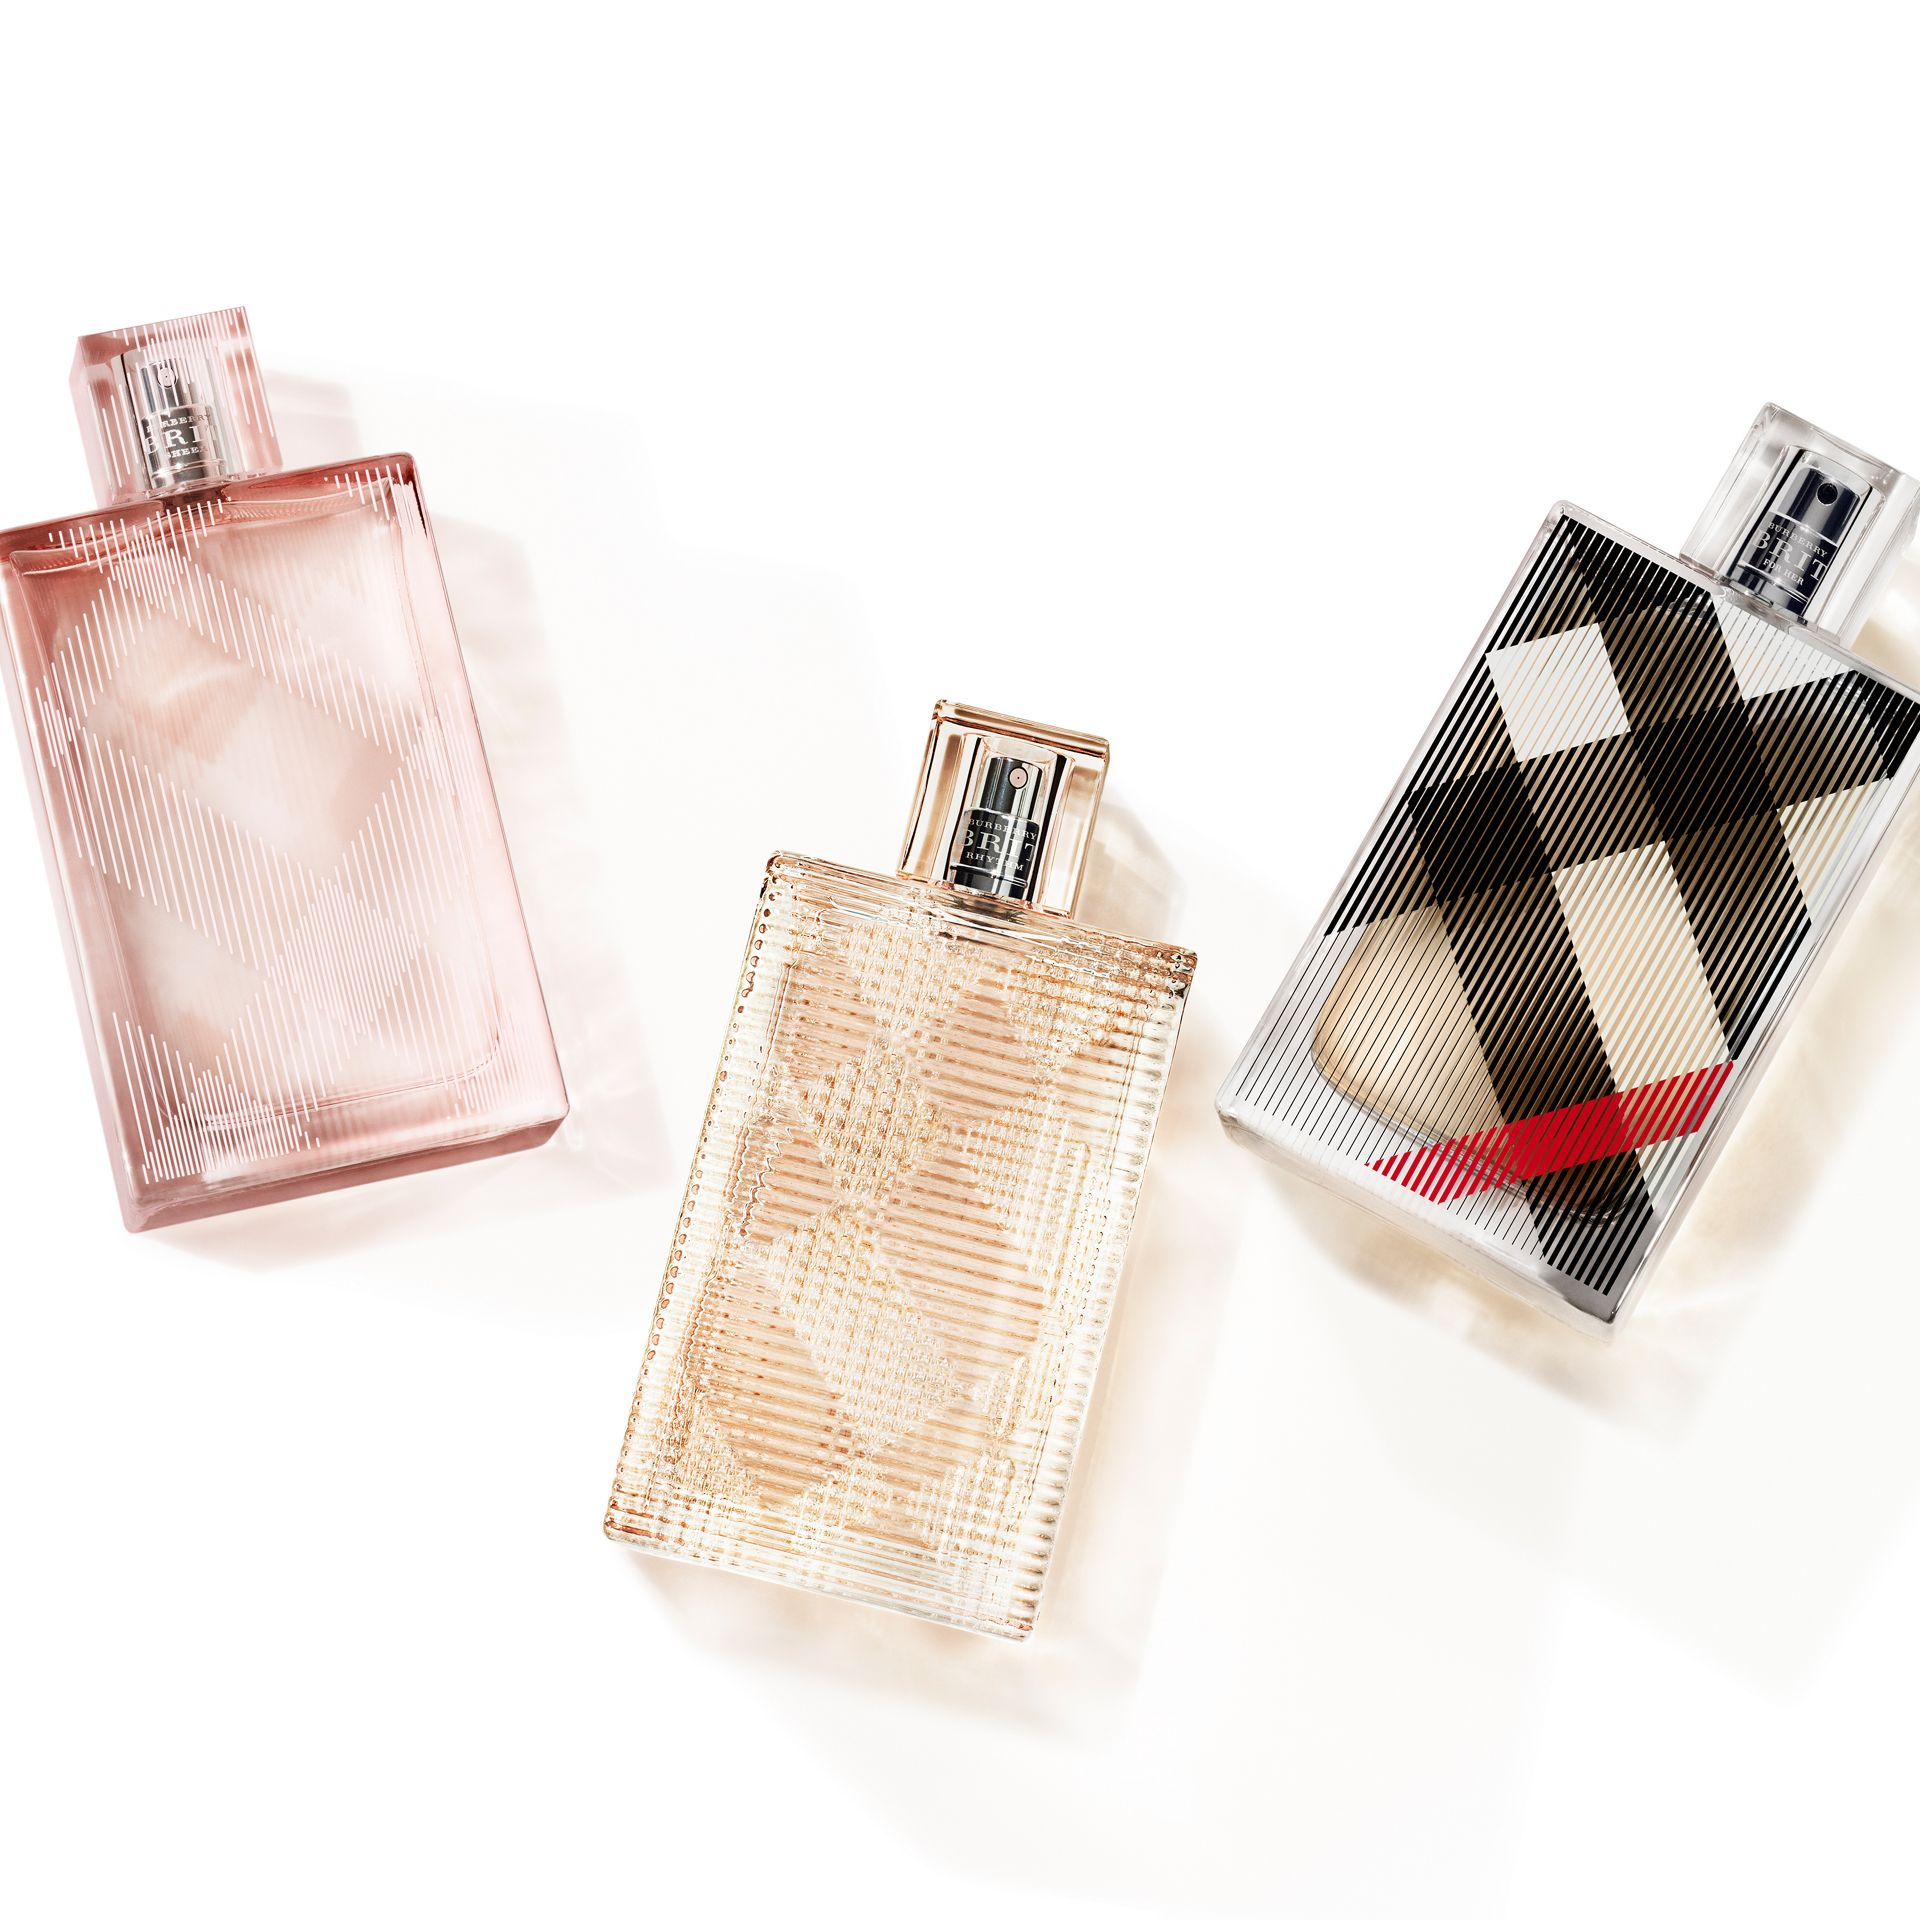 Eau de Parfum Burberry Brit For Her 30 ml - photo de la galerie 3